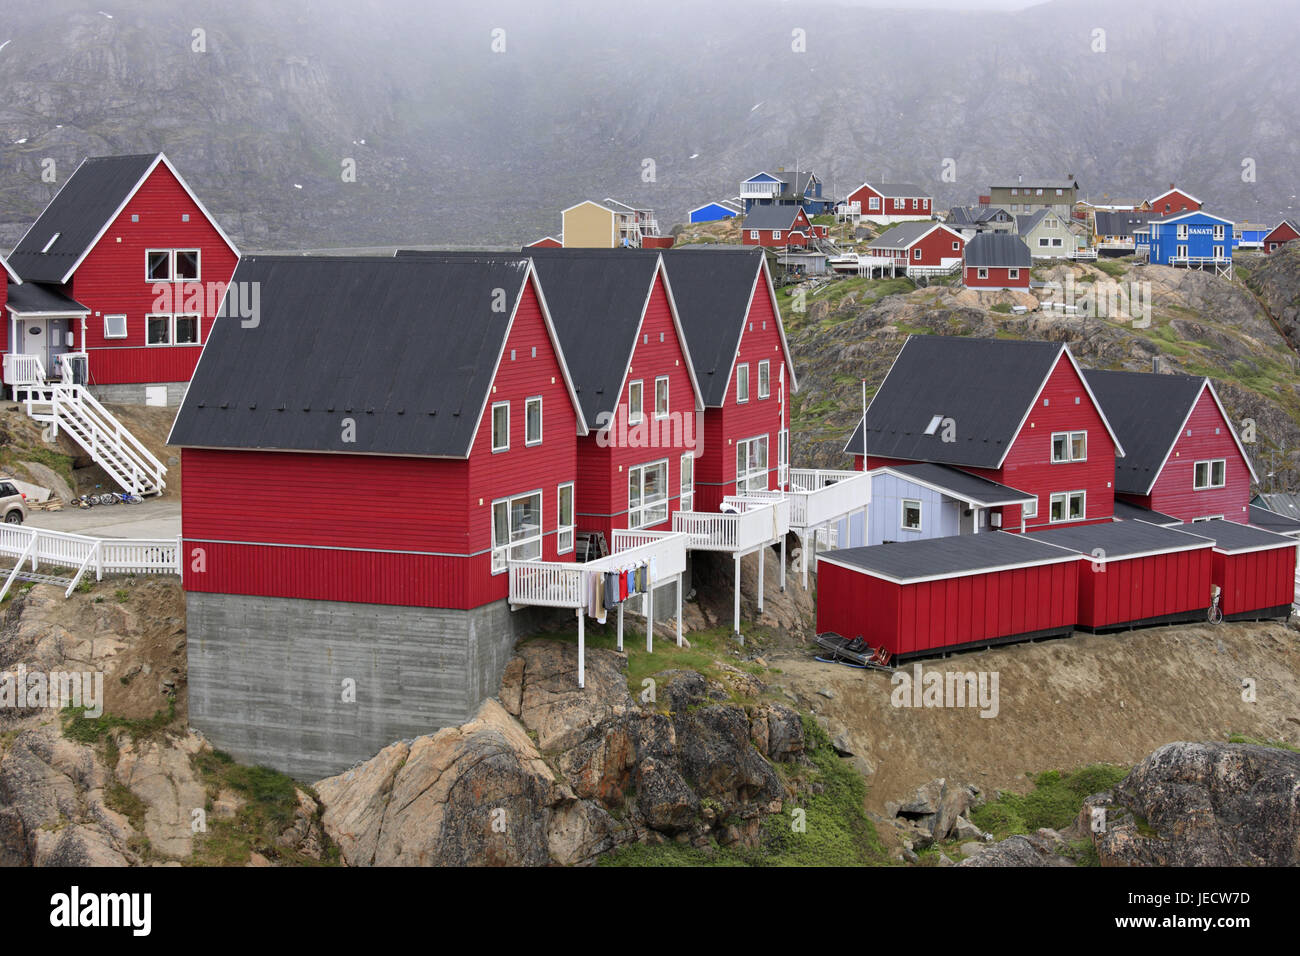 Greenland, Sisimiut, town view, timber houses, Western Greenland, town, destination, building, architecture, houses, - Stock Image